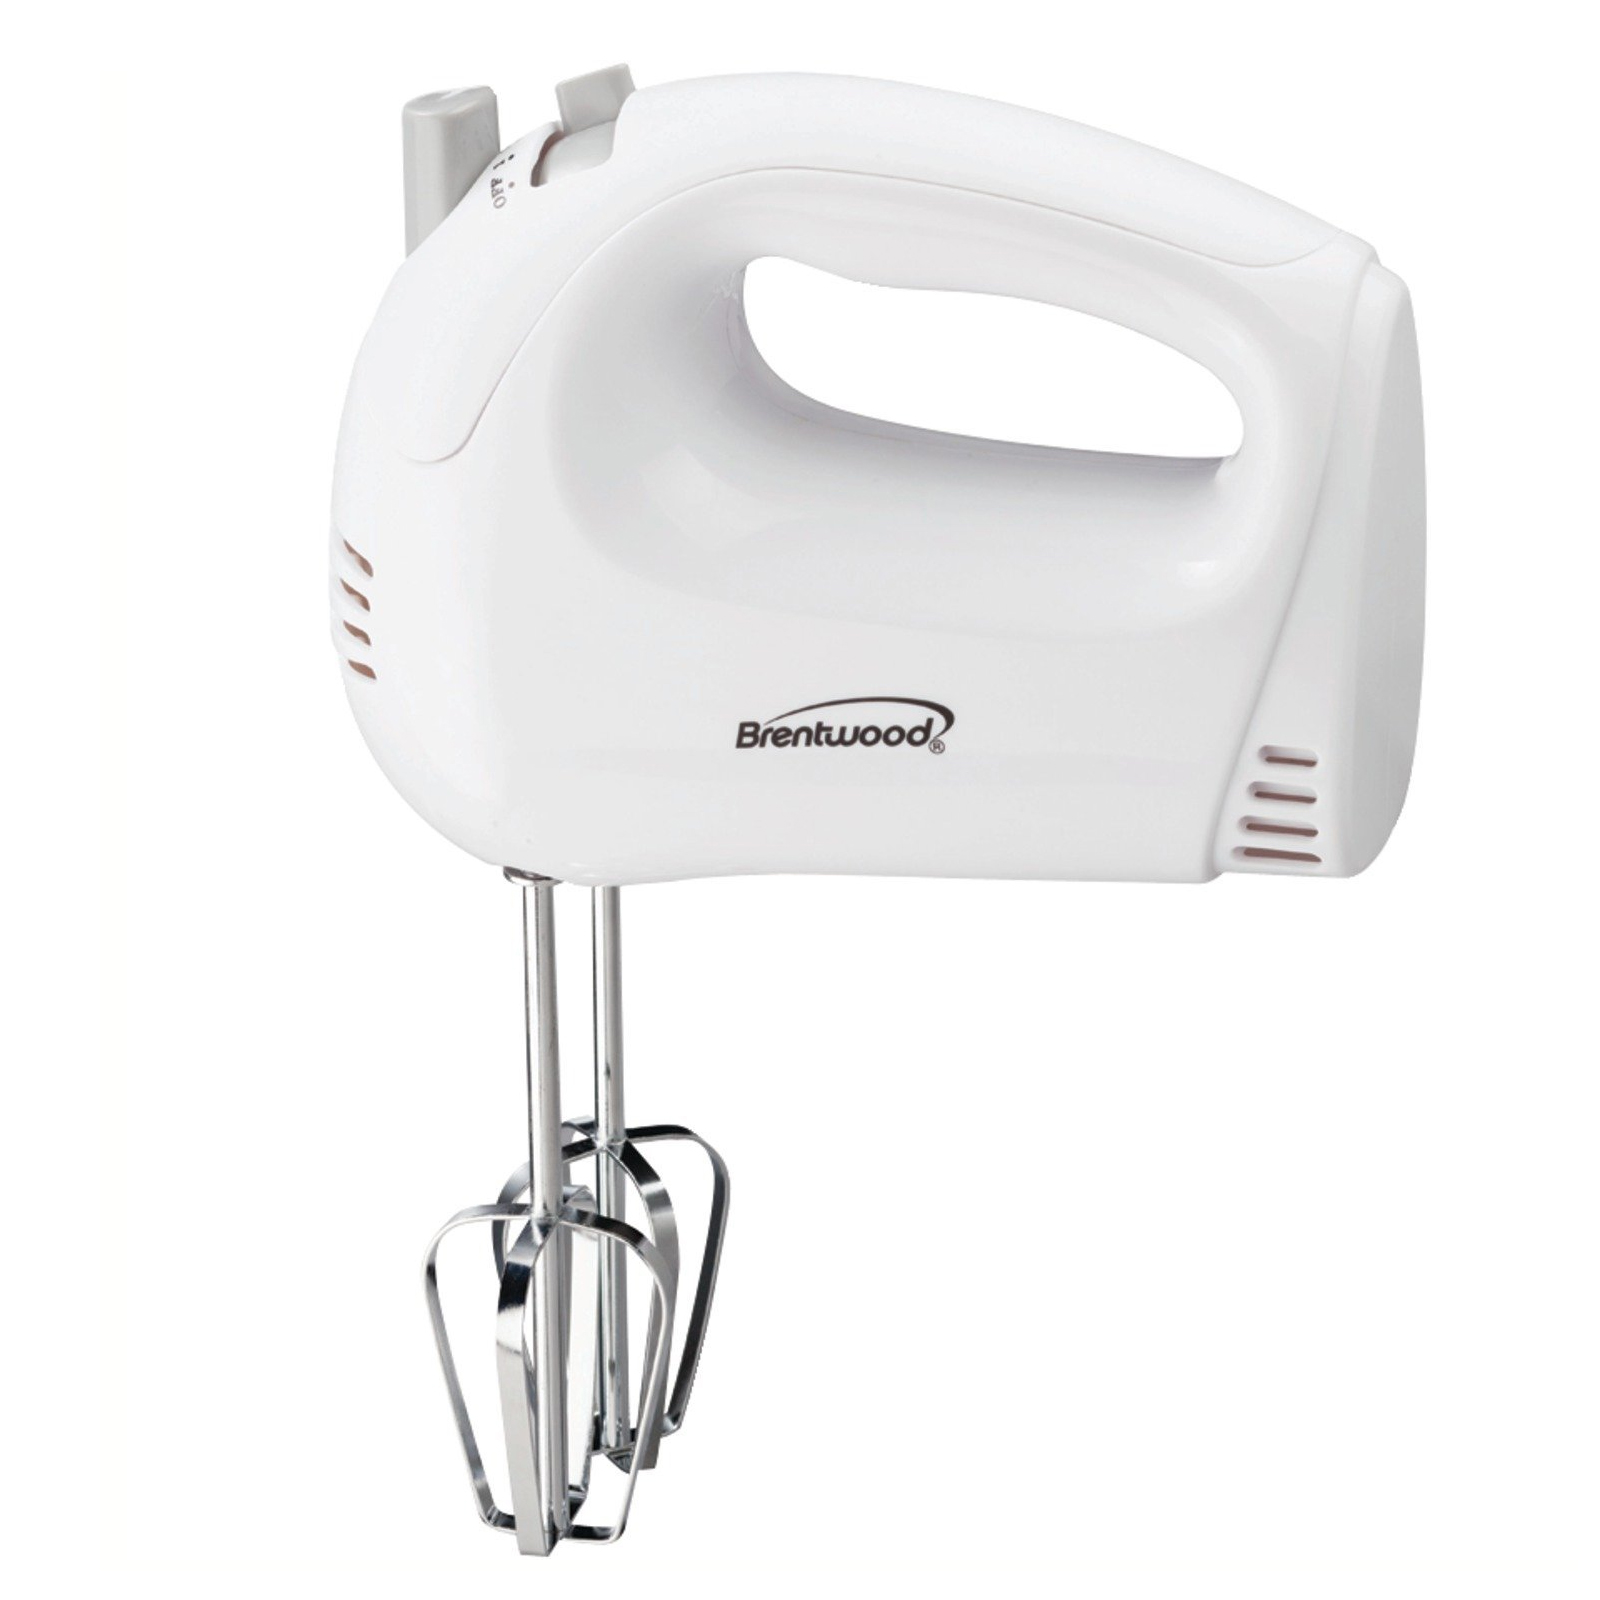 Brentwood 5-Speed Hand Mixer (White) by Supplier Generic